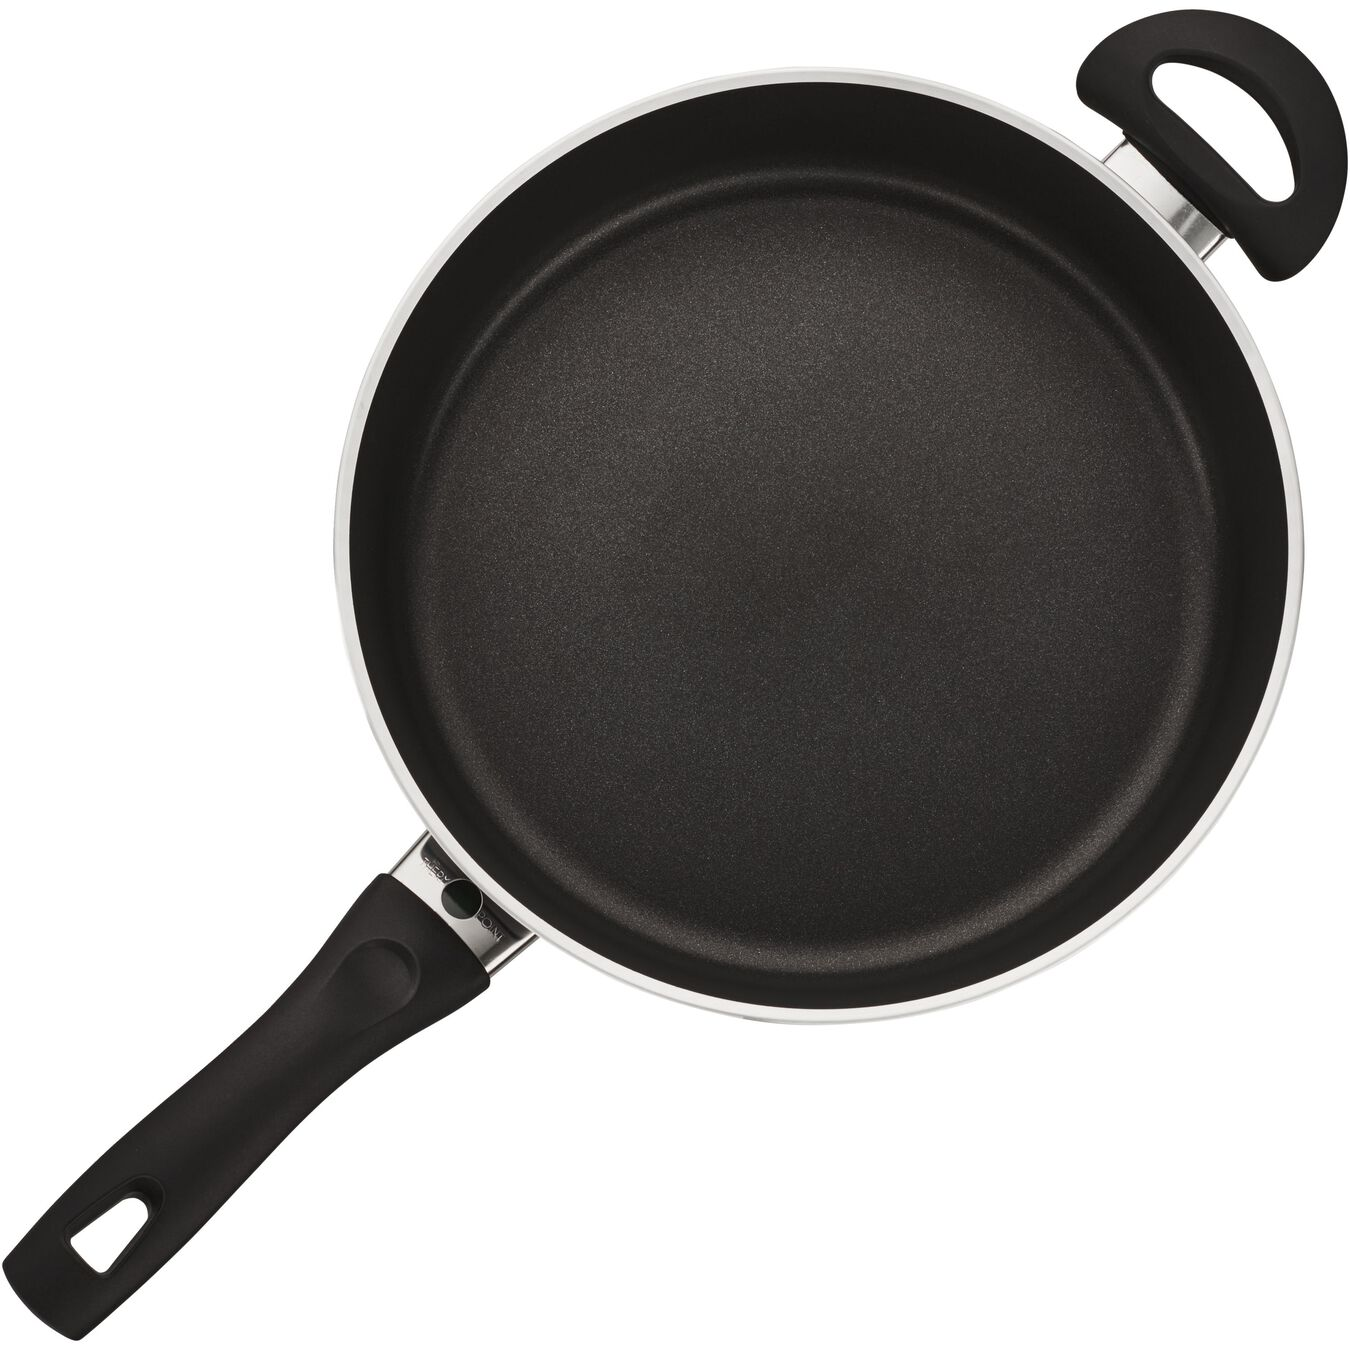 3.8-qt Nonstick Saute Pan with Lid,,large 1